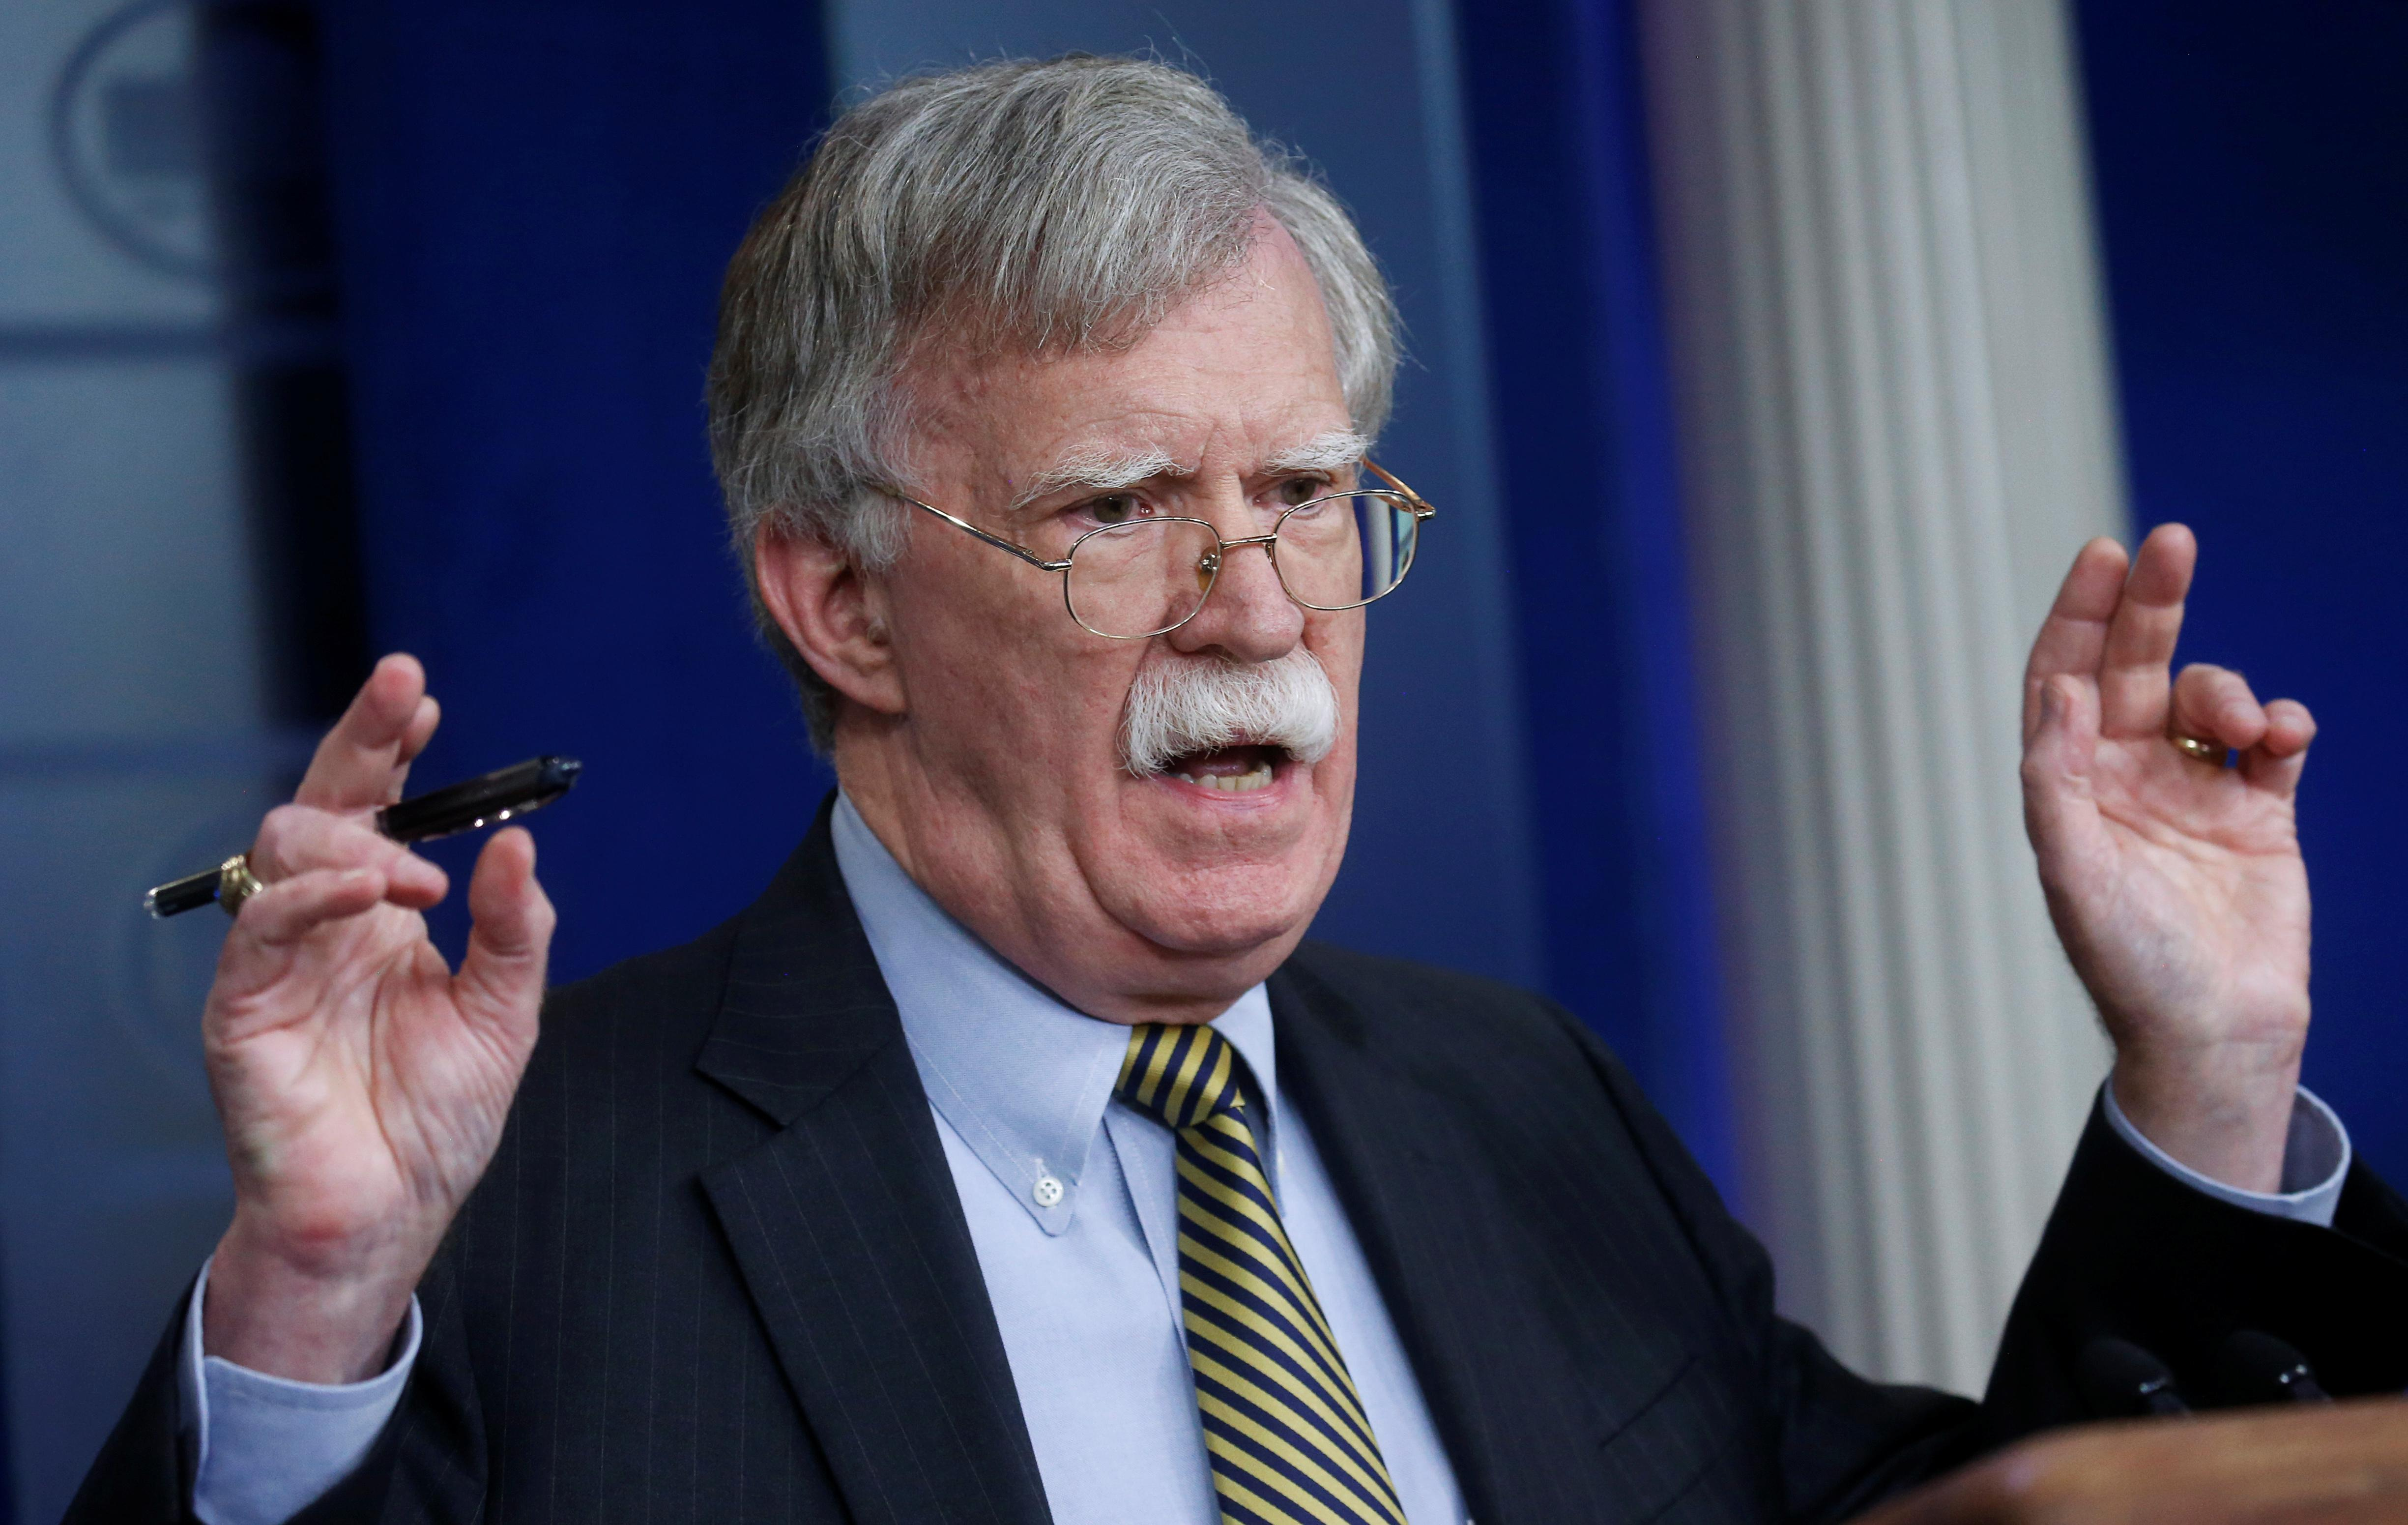 U.S. National Security Advisor John Bolton answers a question from a reporter about how he refers to Palestine during a news conference in the White House briefing room in Washington, U.S., October 3, 2018.    Leah Millis